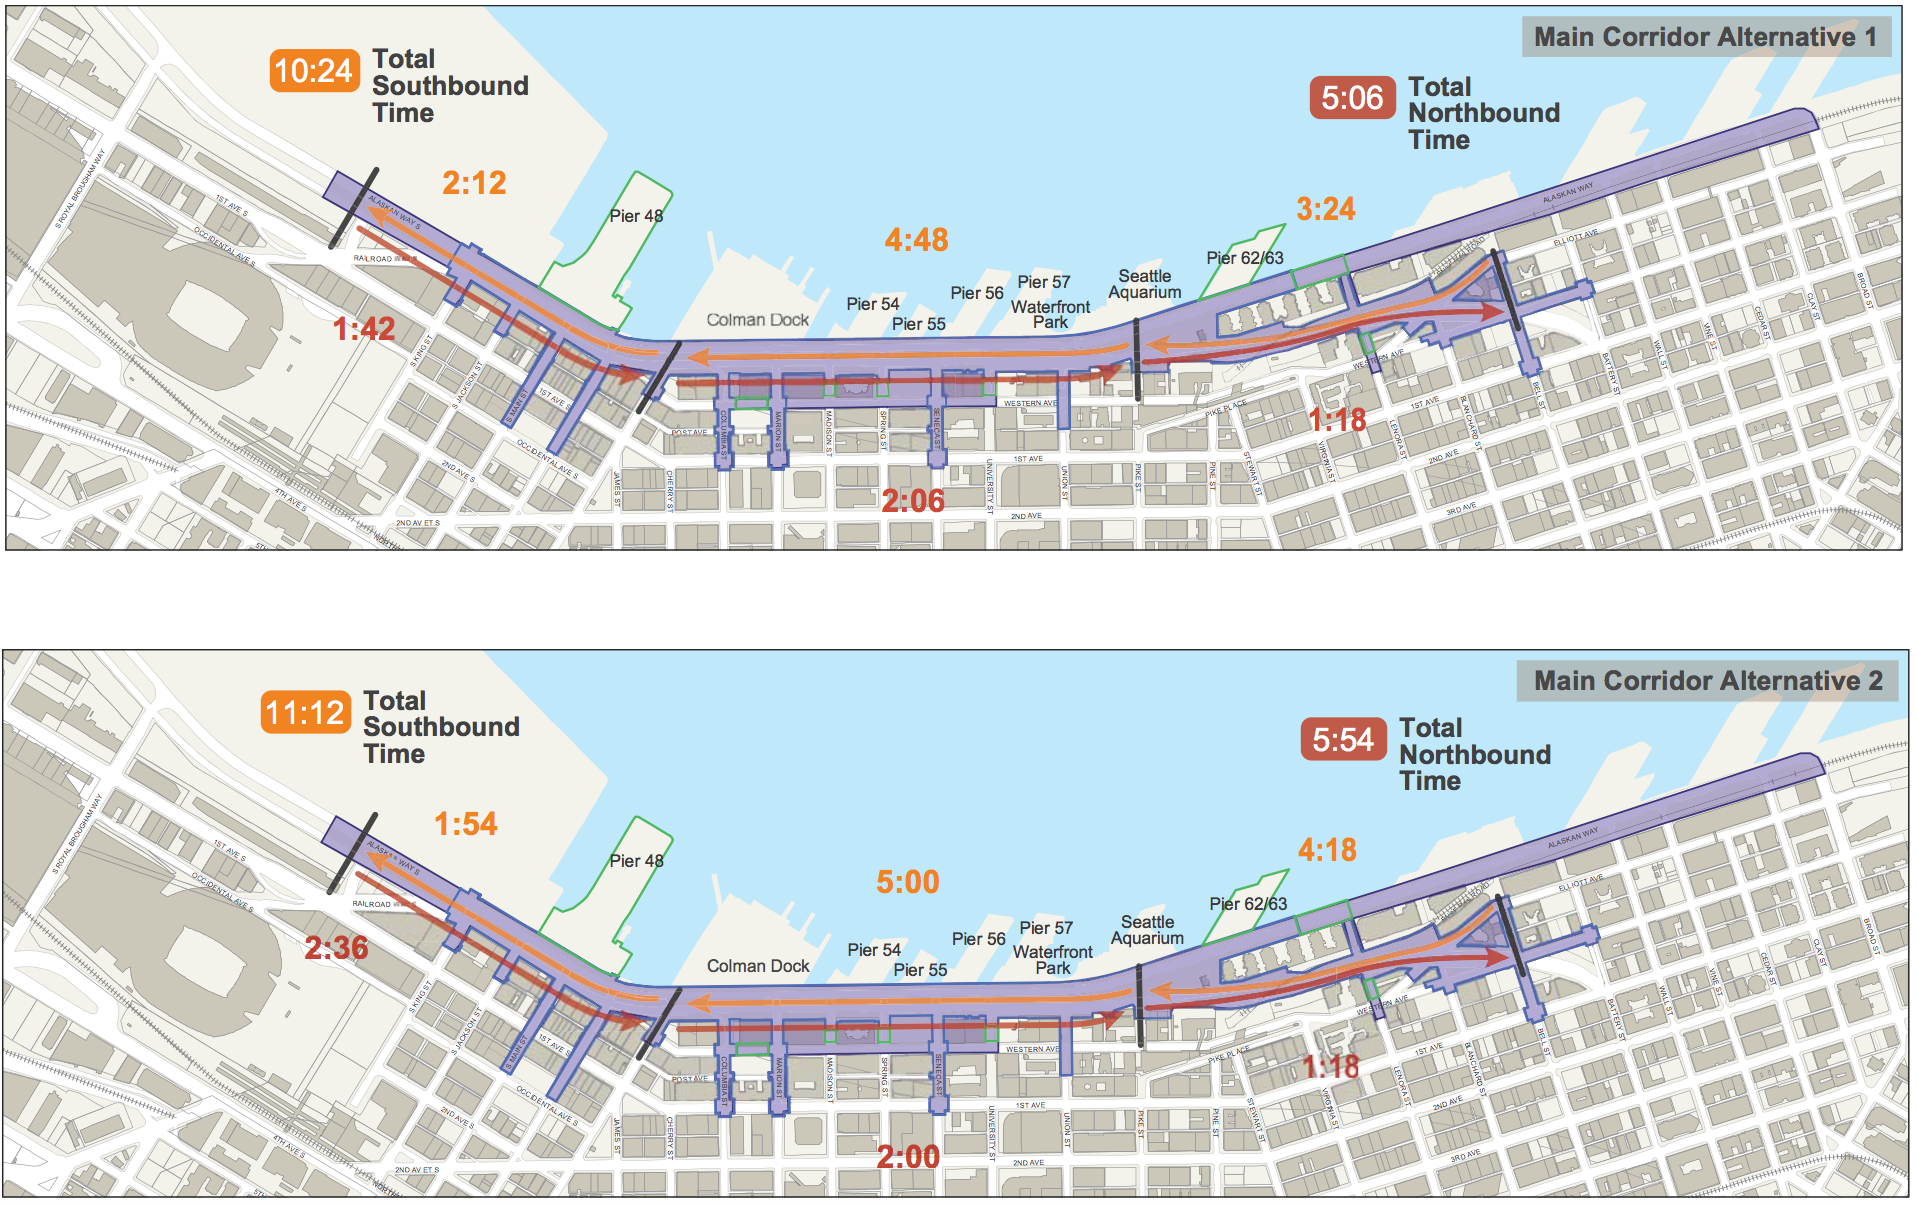 Vehicular Travel Time Under the Two Alternatives